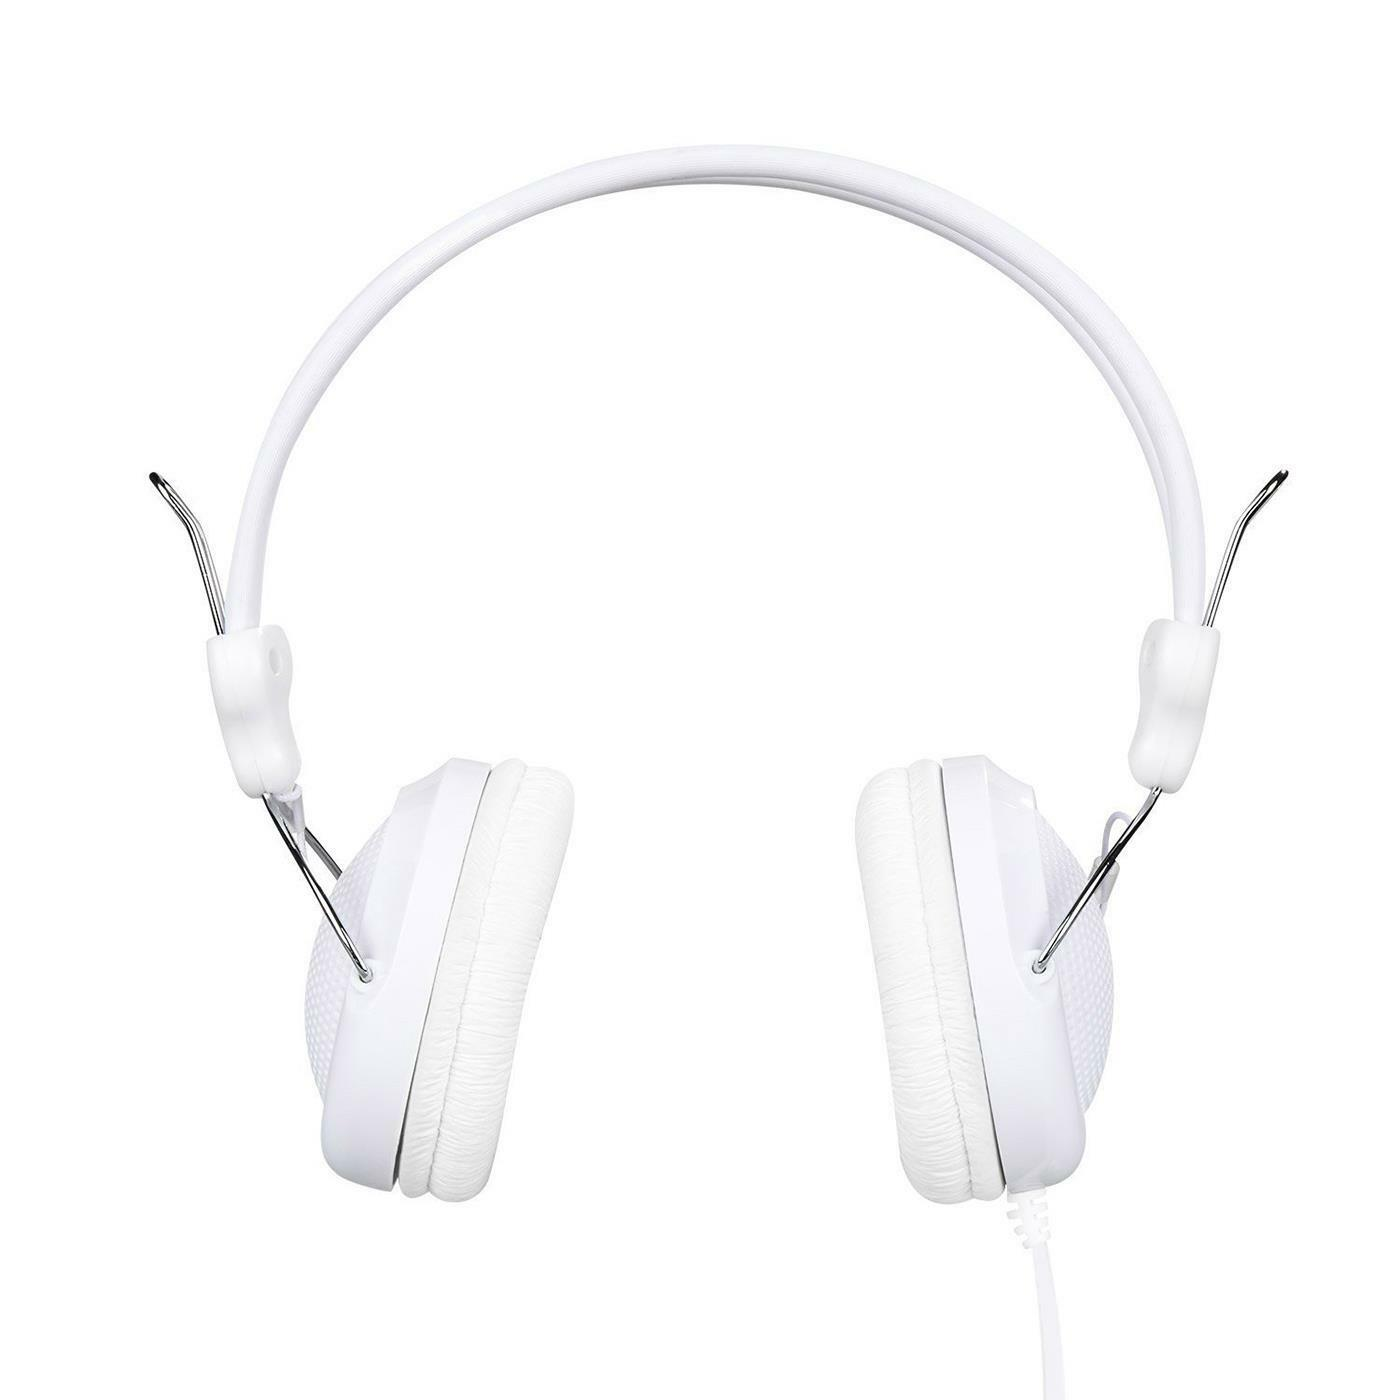 Headset Hoco W5 Headphones Wired Jack 0 1 8in Microphone Mobile Phone Pc White For Sale Online